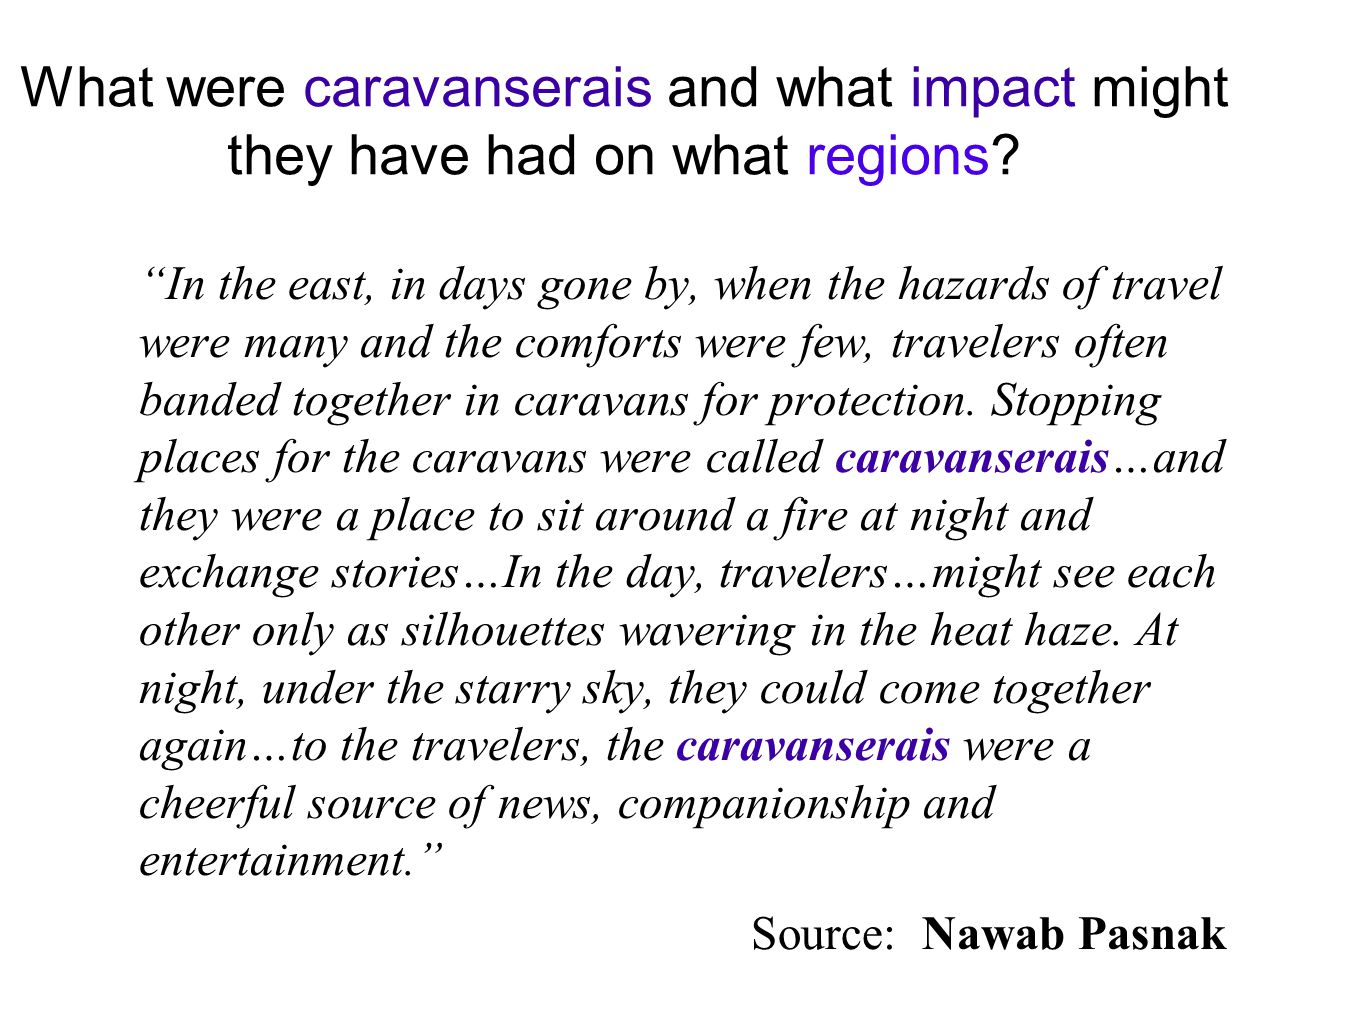 In the east, in days gone by, when the hazards of travel were many and the comforts were few, travelers often banded together in caravans for protection.